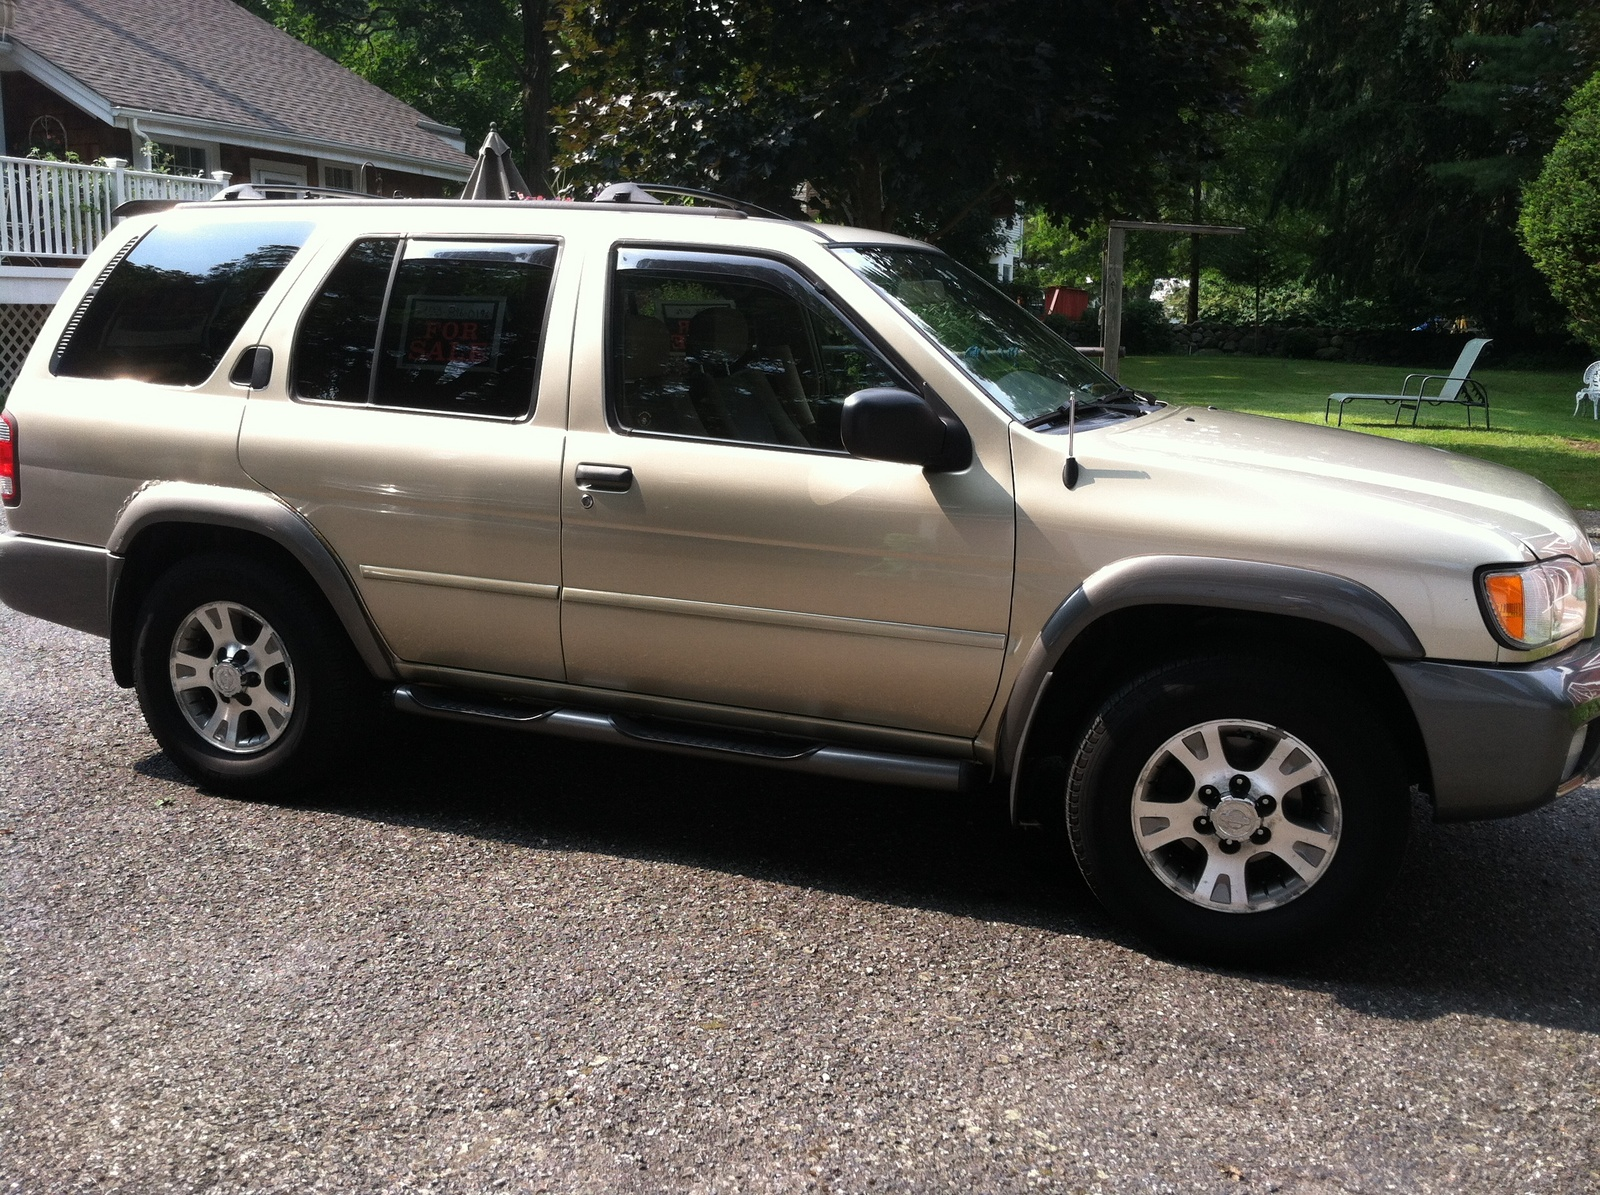 2000 nissan pathfinder - information and photos - zombiedrive